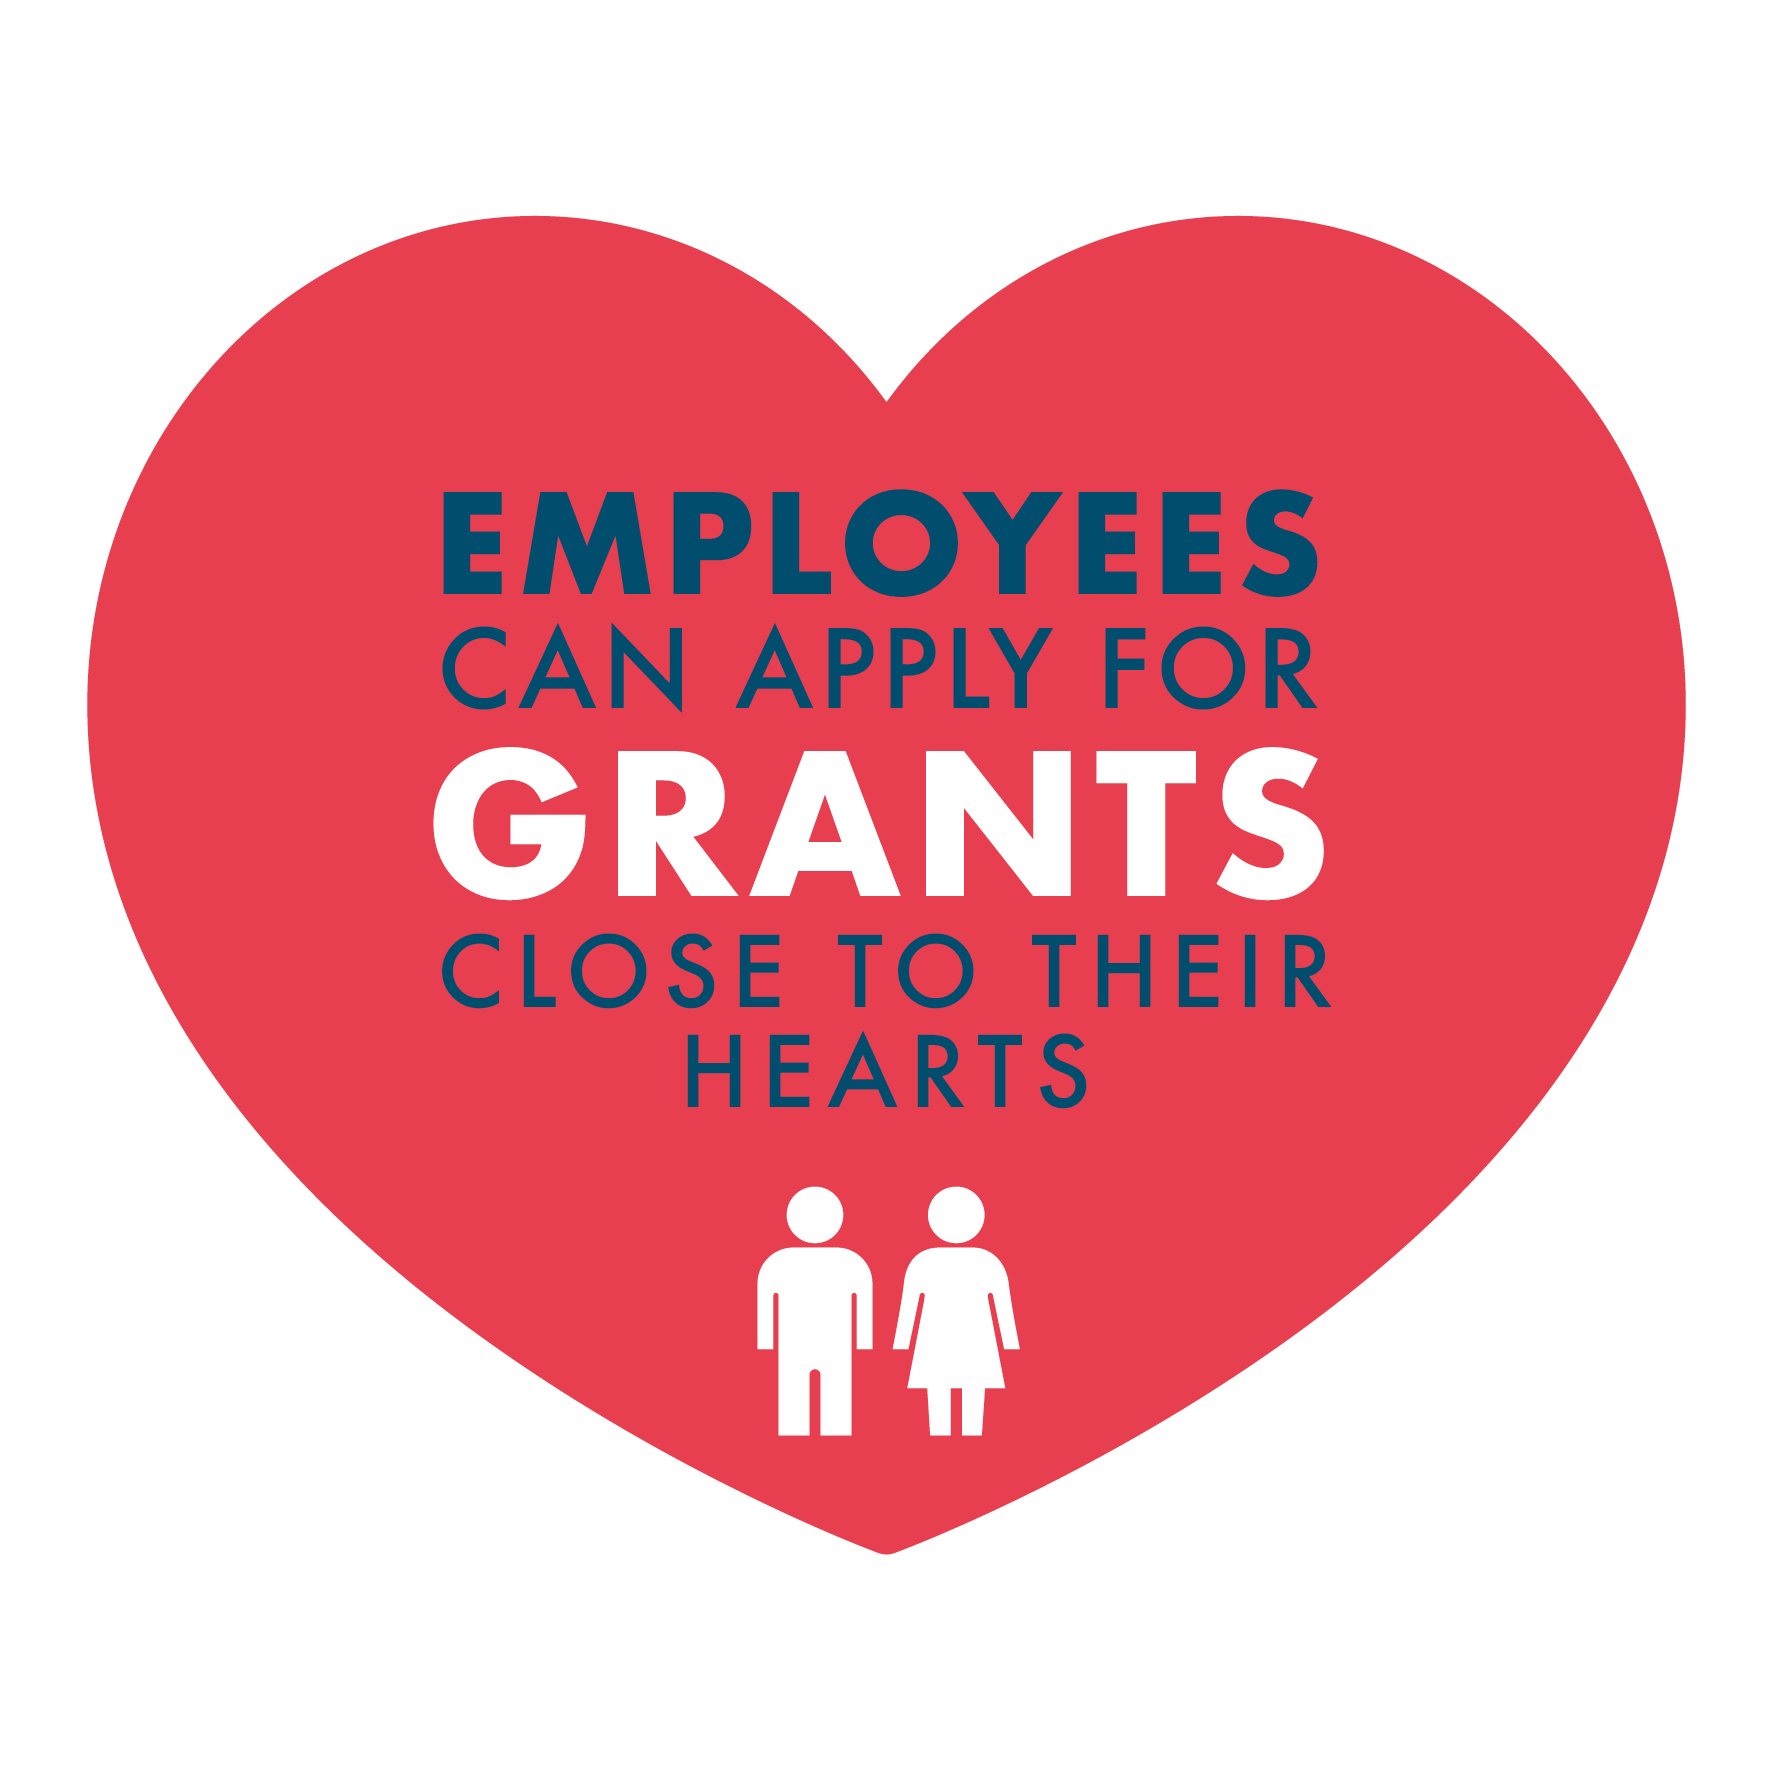 Employees can apply for grants close to their hearts